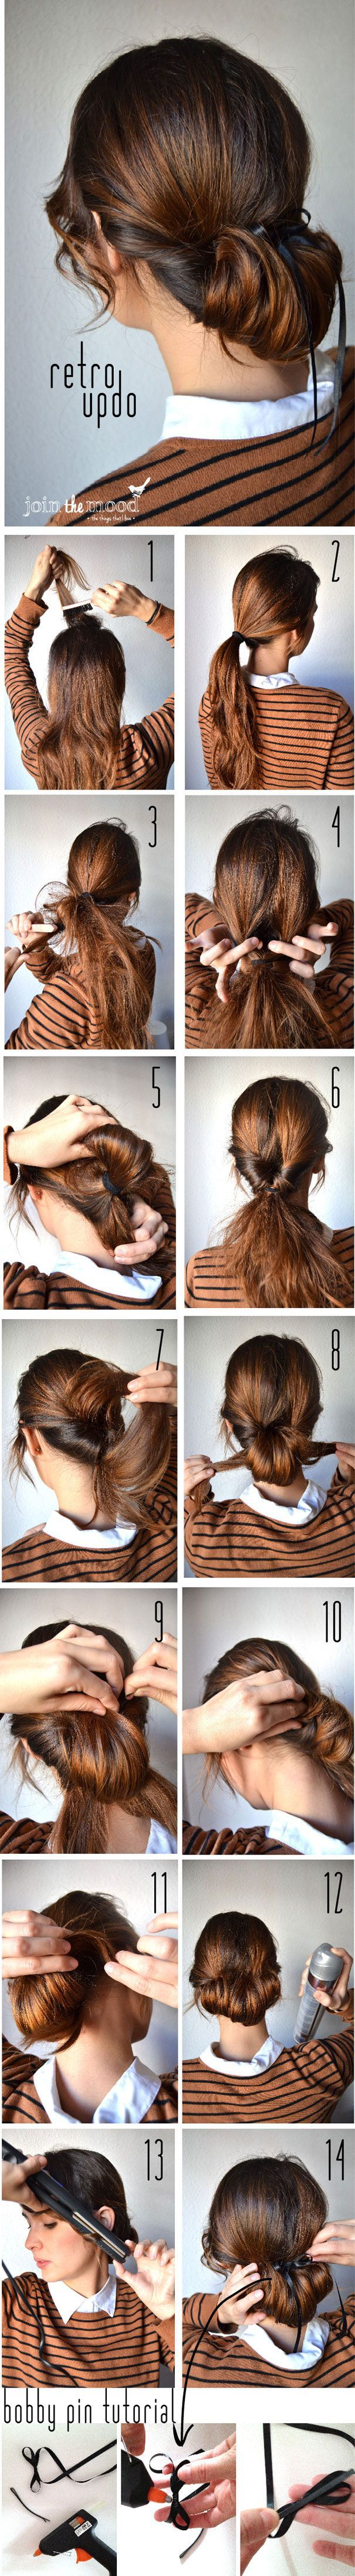 DIY Ideas Hair & Beauty : Join the Mood: RETRO UPDO  https://diypick.com/beauty/diy-hair/diy-ideas-hair-beauty-join-the-mood-retro-updo/